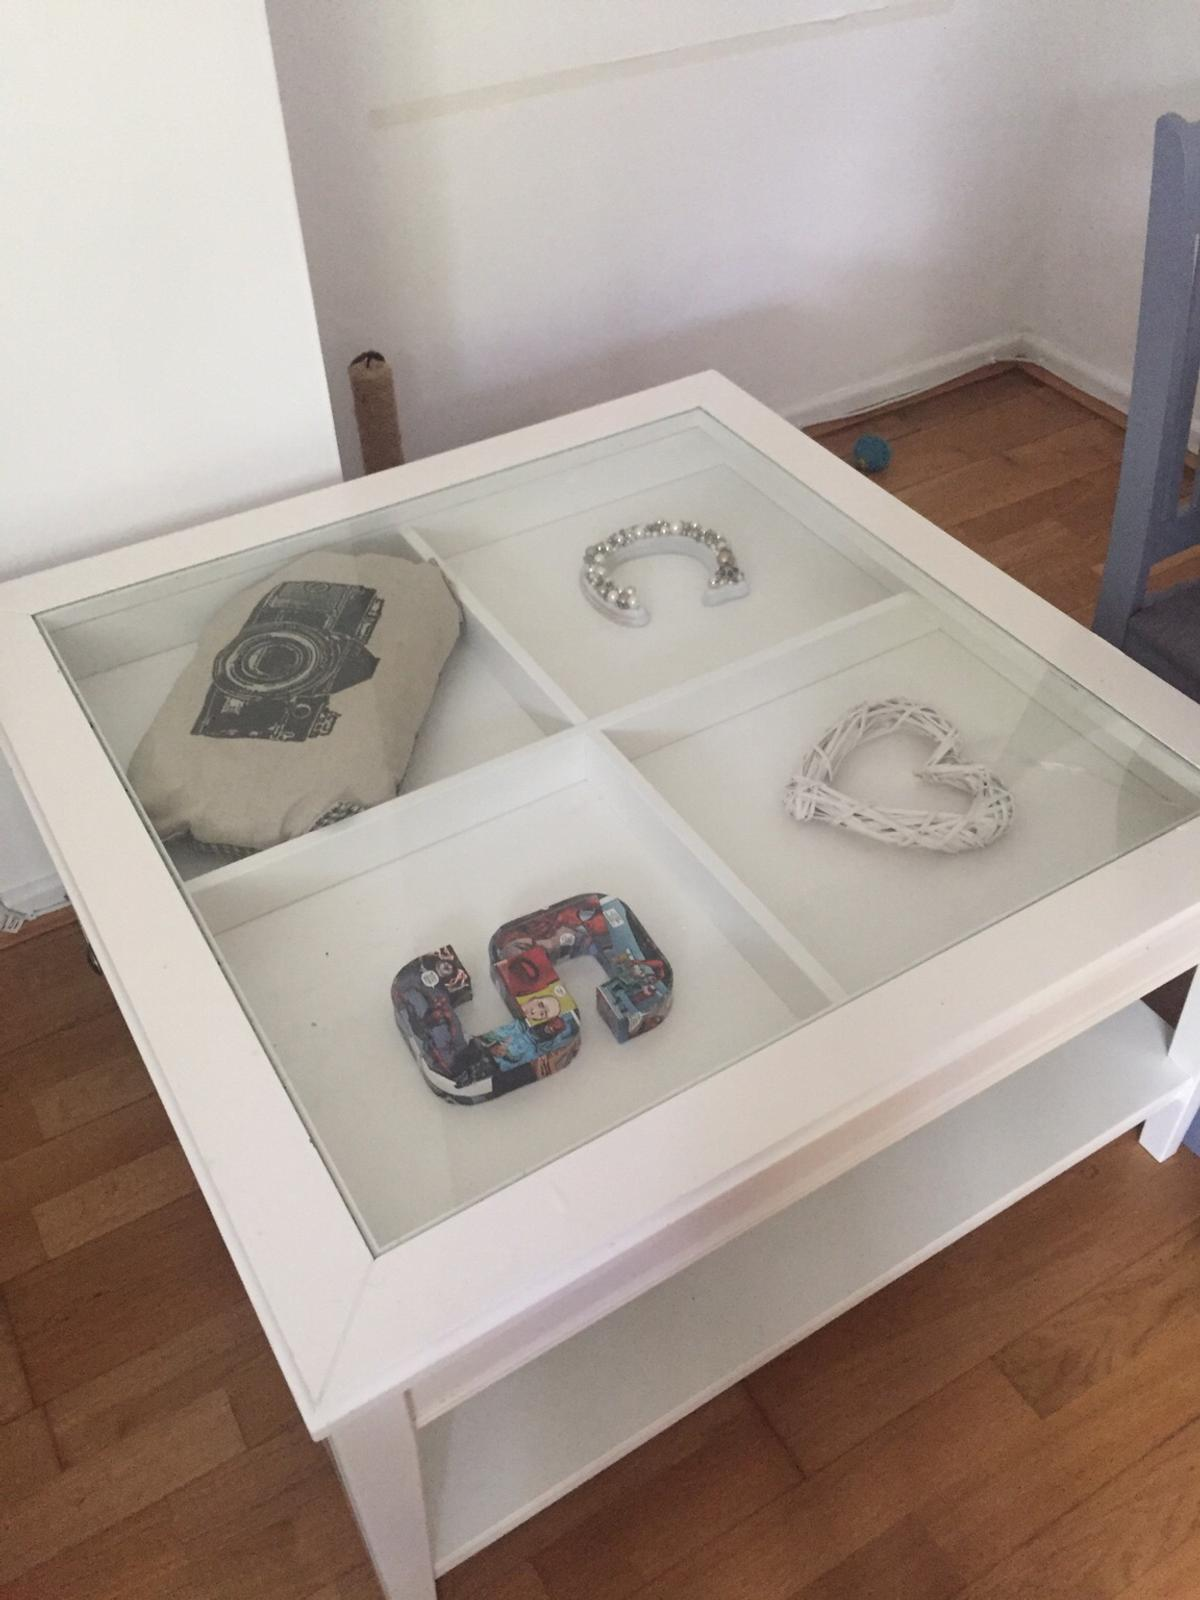 Incredible Ikea Liatorp Coffee Table White Glass In Se3 London For Lamtechconsult Wood Chair Design Ideas Lamtechconsultcom